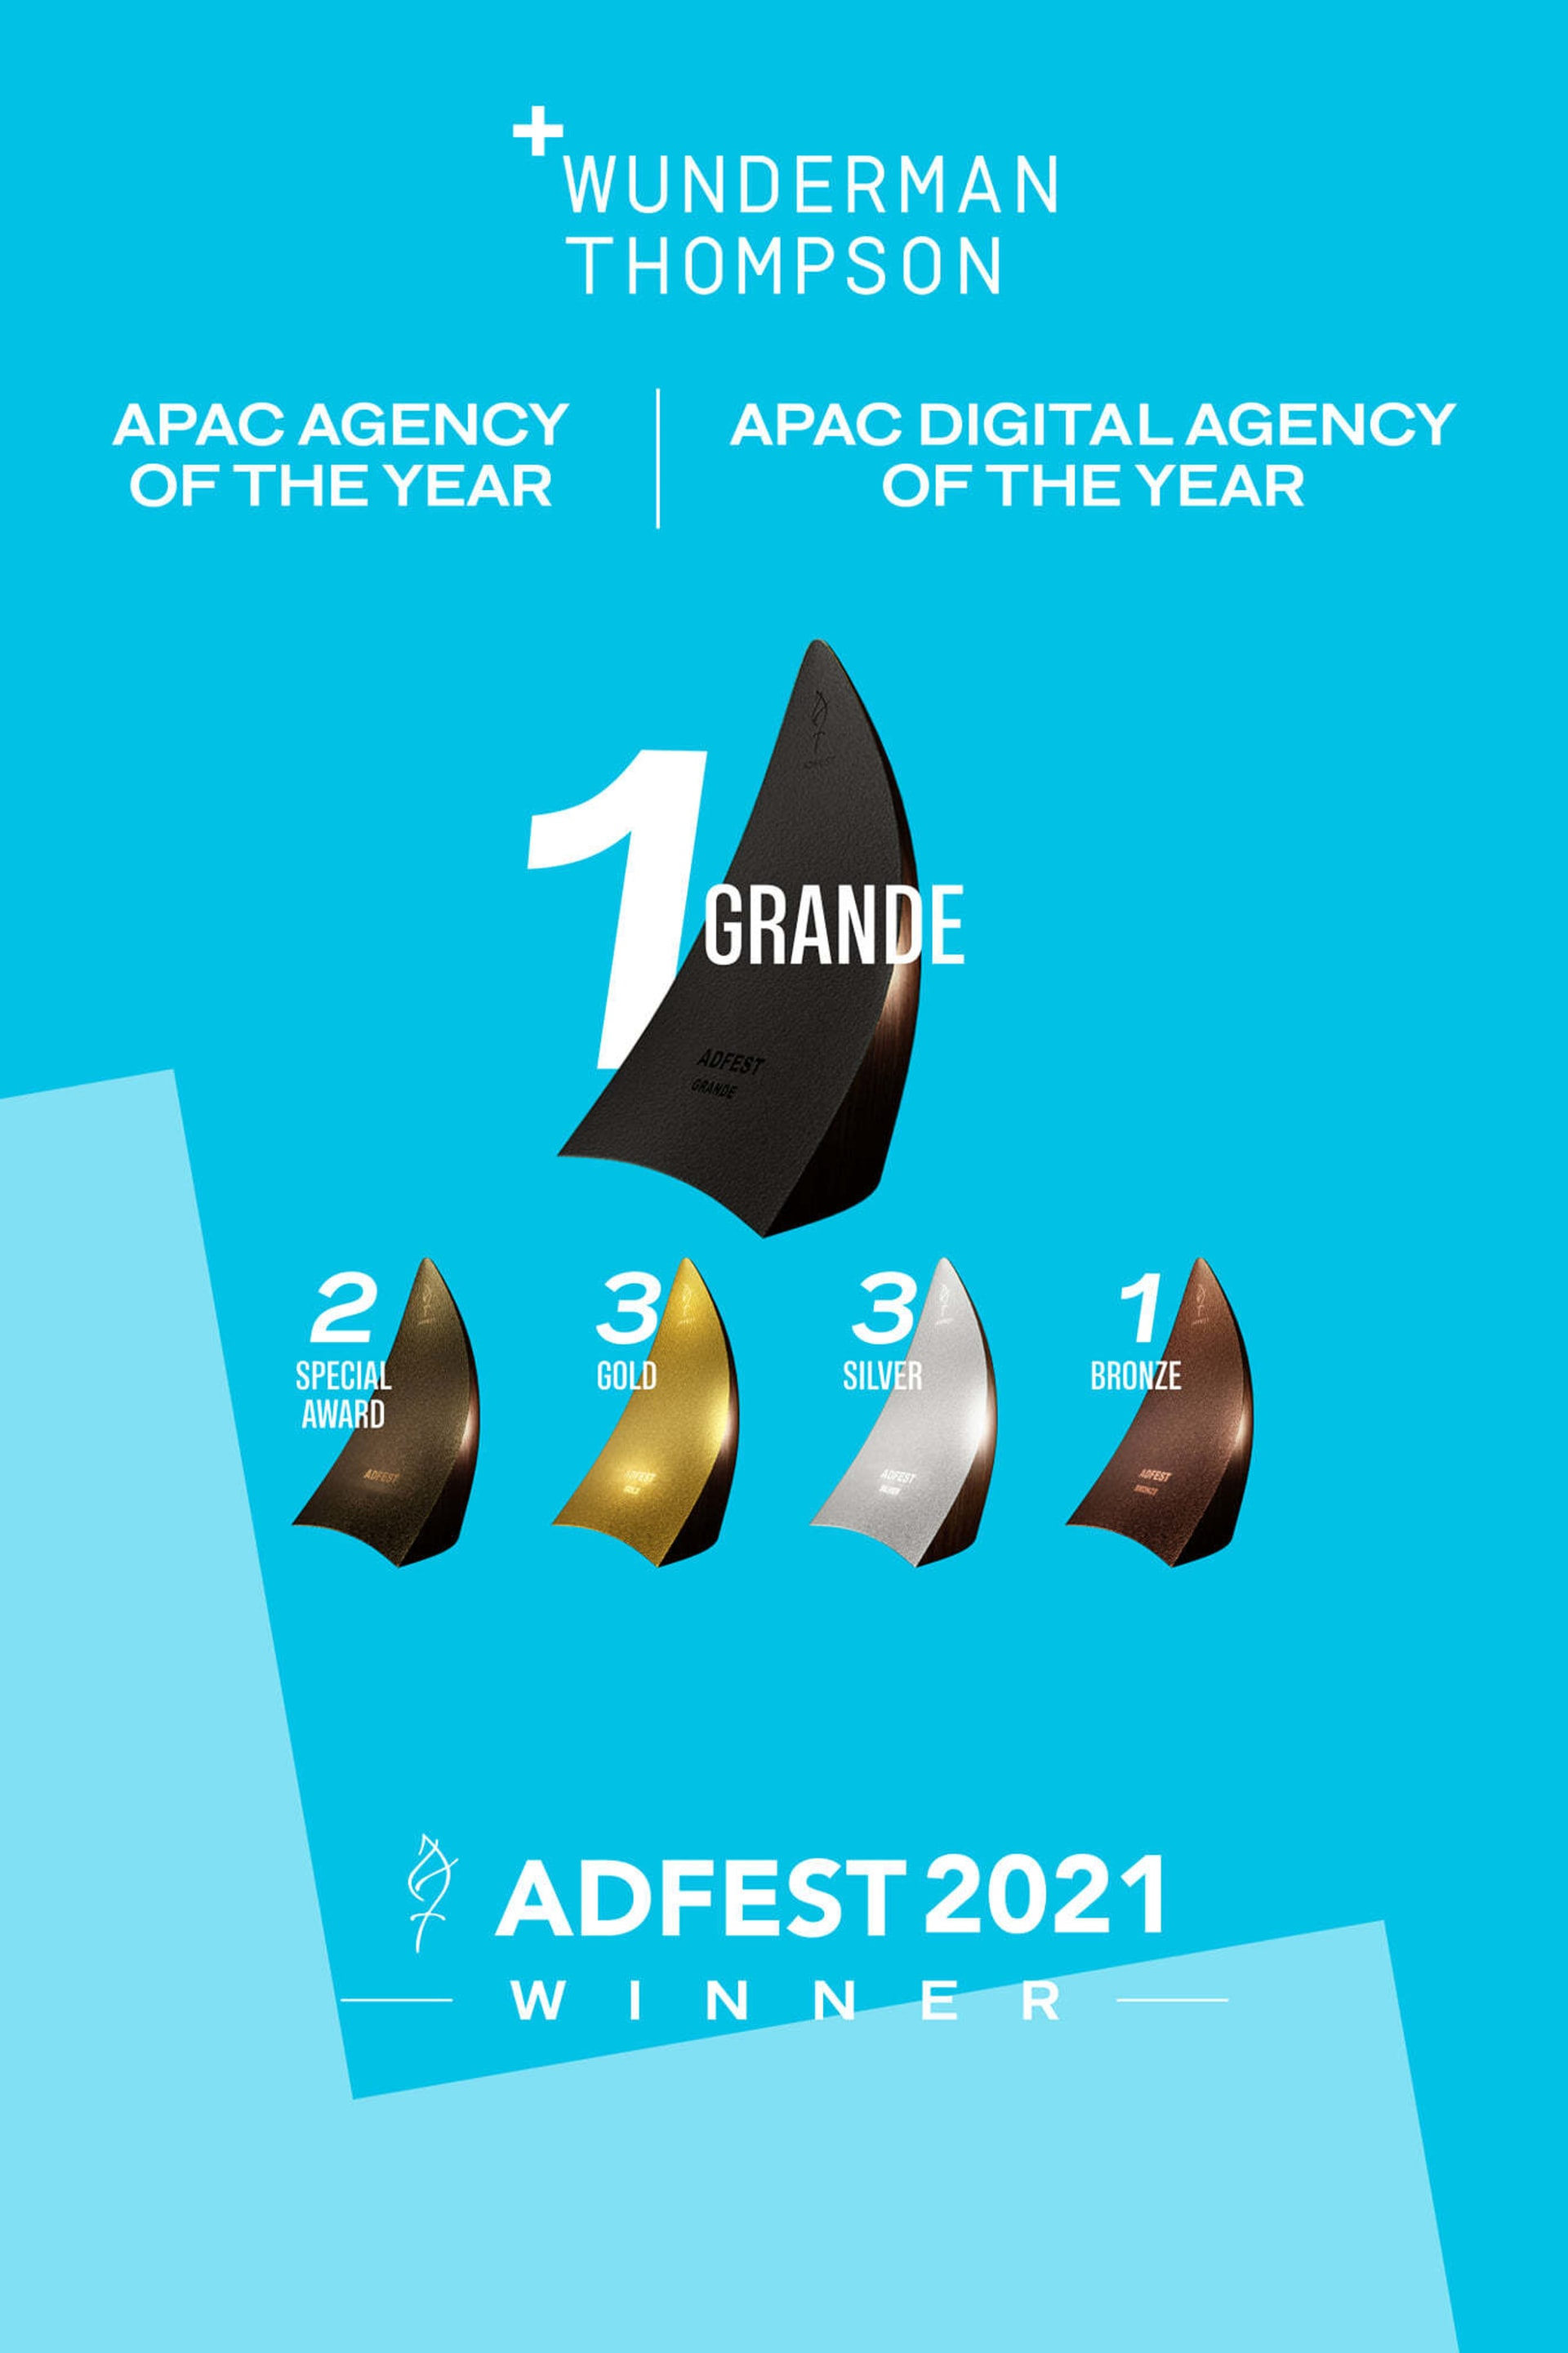 Agency of the Year 2021 Ad Fest poster